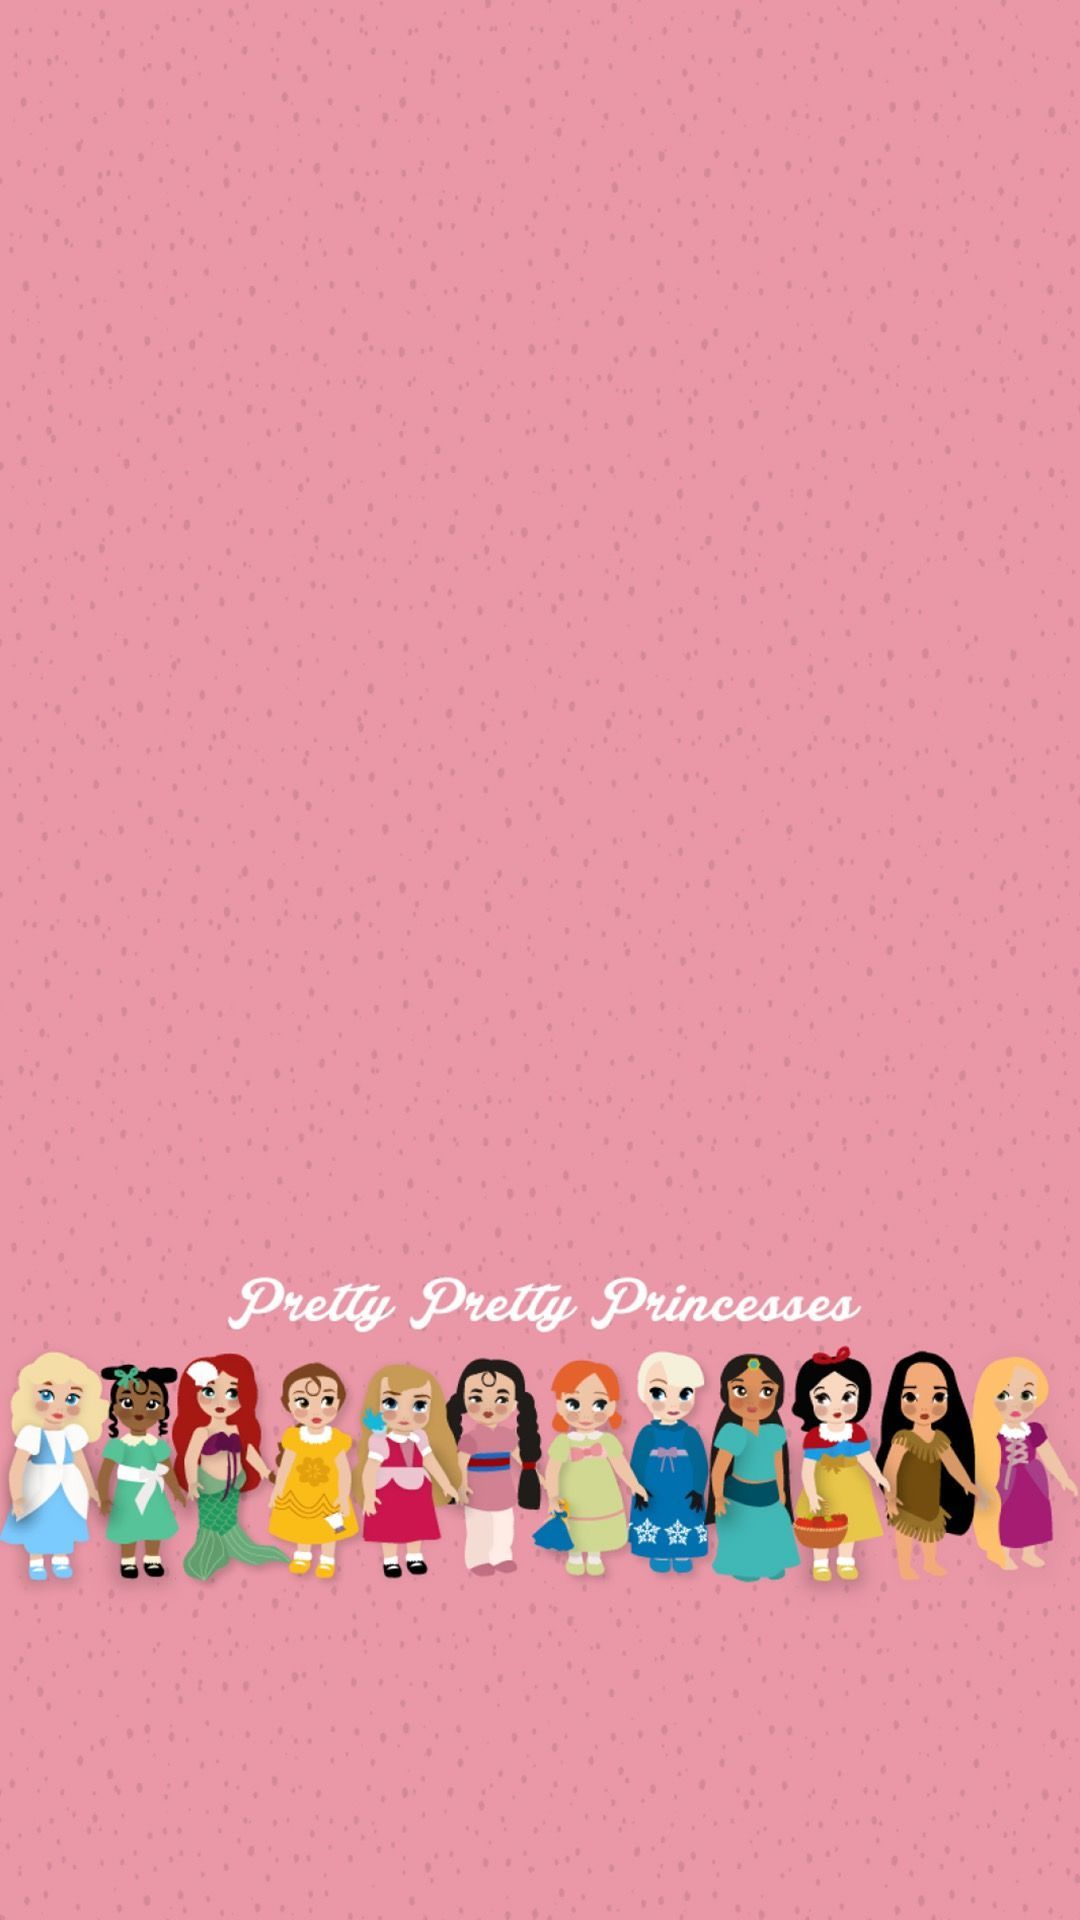 Disney Princesses Iphone Wallpapers Top Free Disney Princesses Iphone Backgrounds Wallpaperaccess